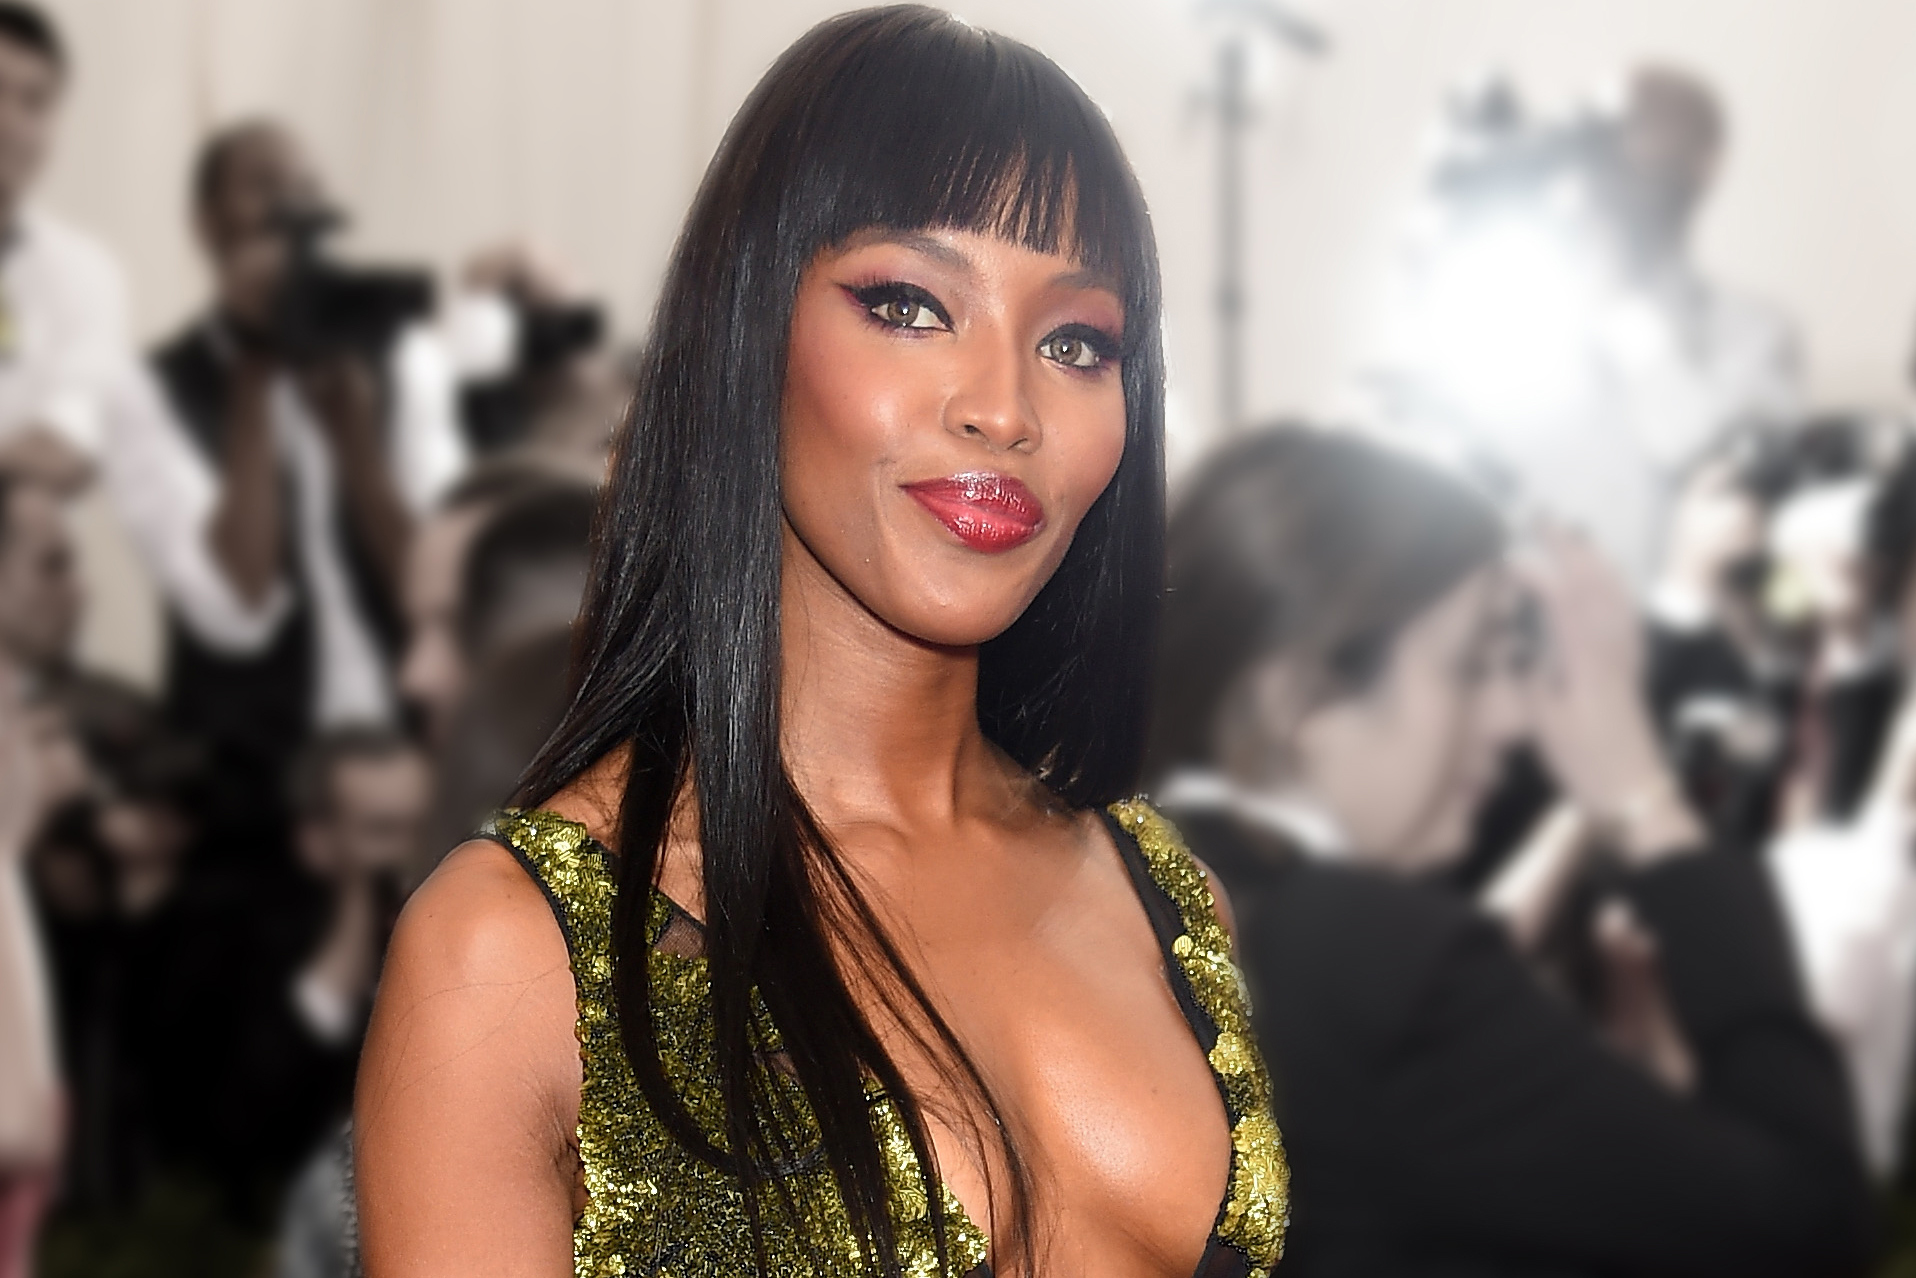 "NEW YORK, NY - MAY 04: (EDITORS NOTE: Image has been digitally altered.) Naomi Campbell attends the ""China: Through The Looking Glass"" Costume Institute Benefit Gala at the Metropolitan Museum of Art on May 4, 2015 in New York City. (Photo by Dimitrios Kambouris/Getty Images)"